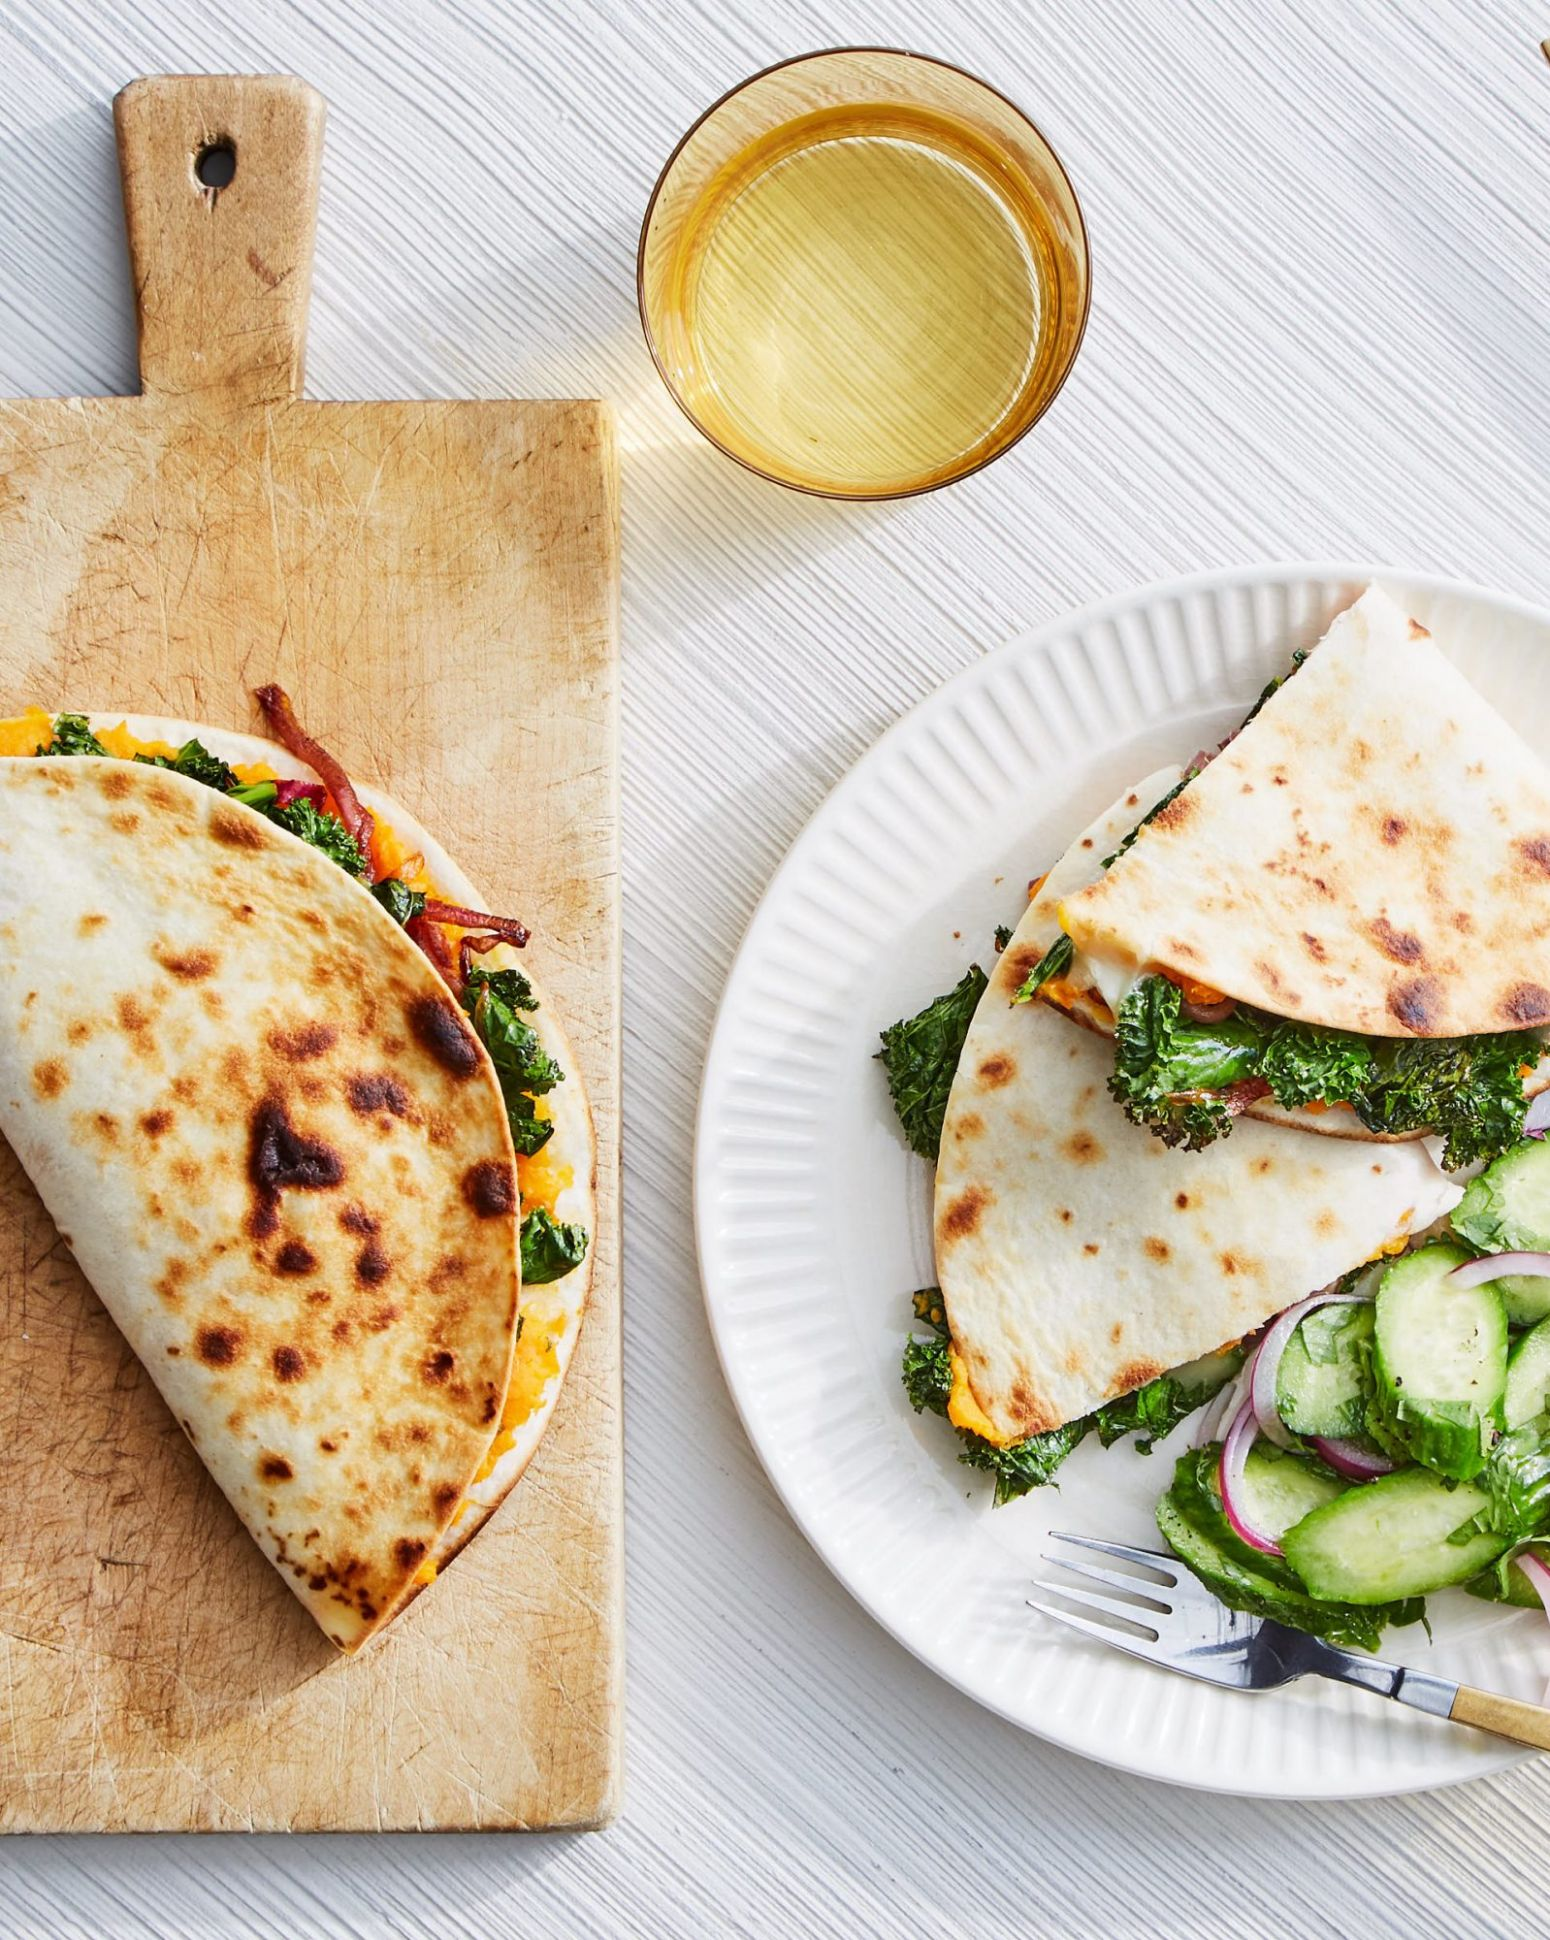 10 Quick Quesadilla Recipes Ideal for Snack or Dinner | Martha Stewart - Summer Quesadilla Recipes